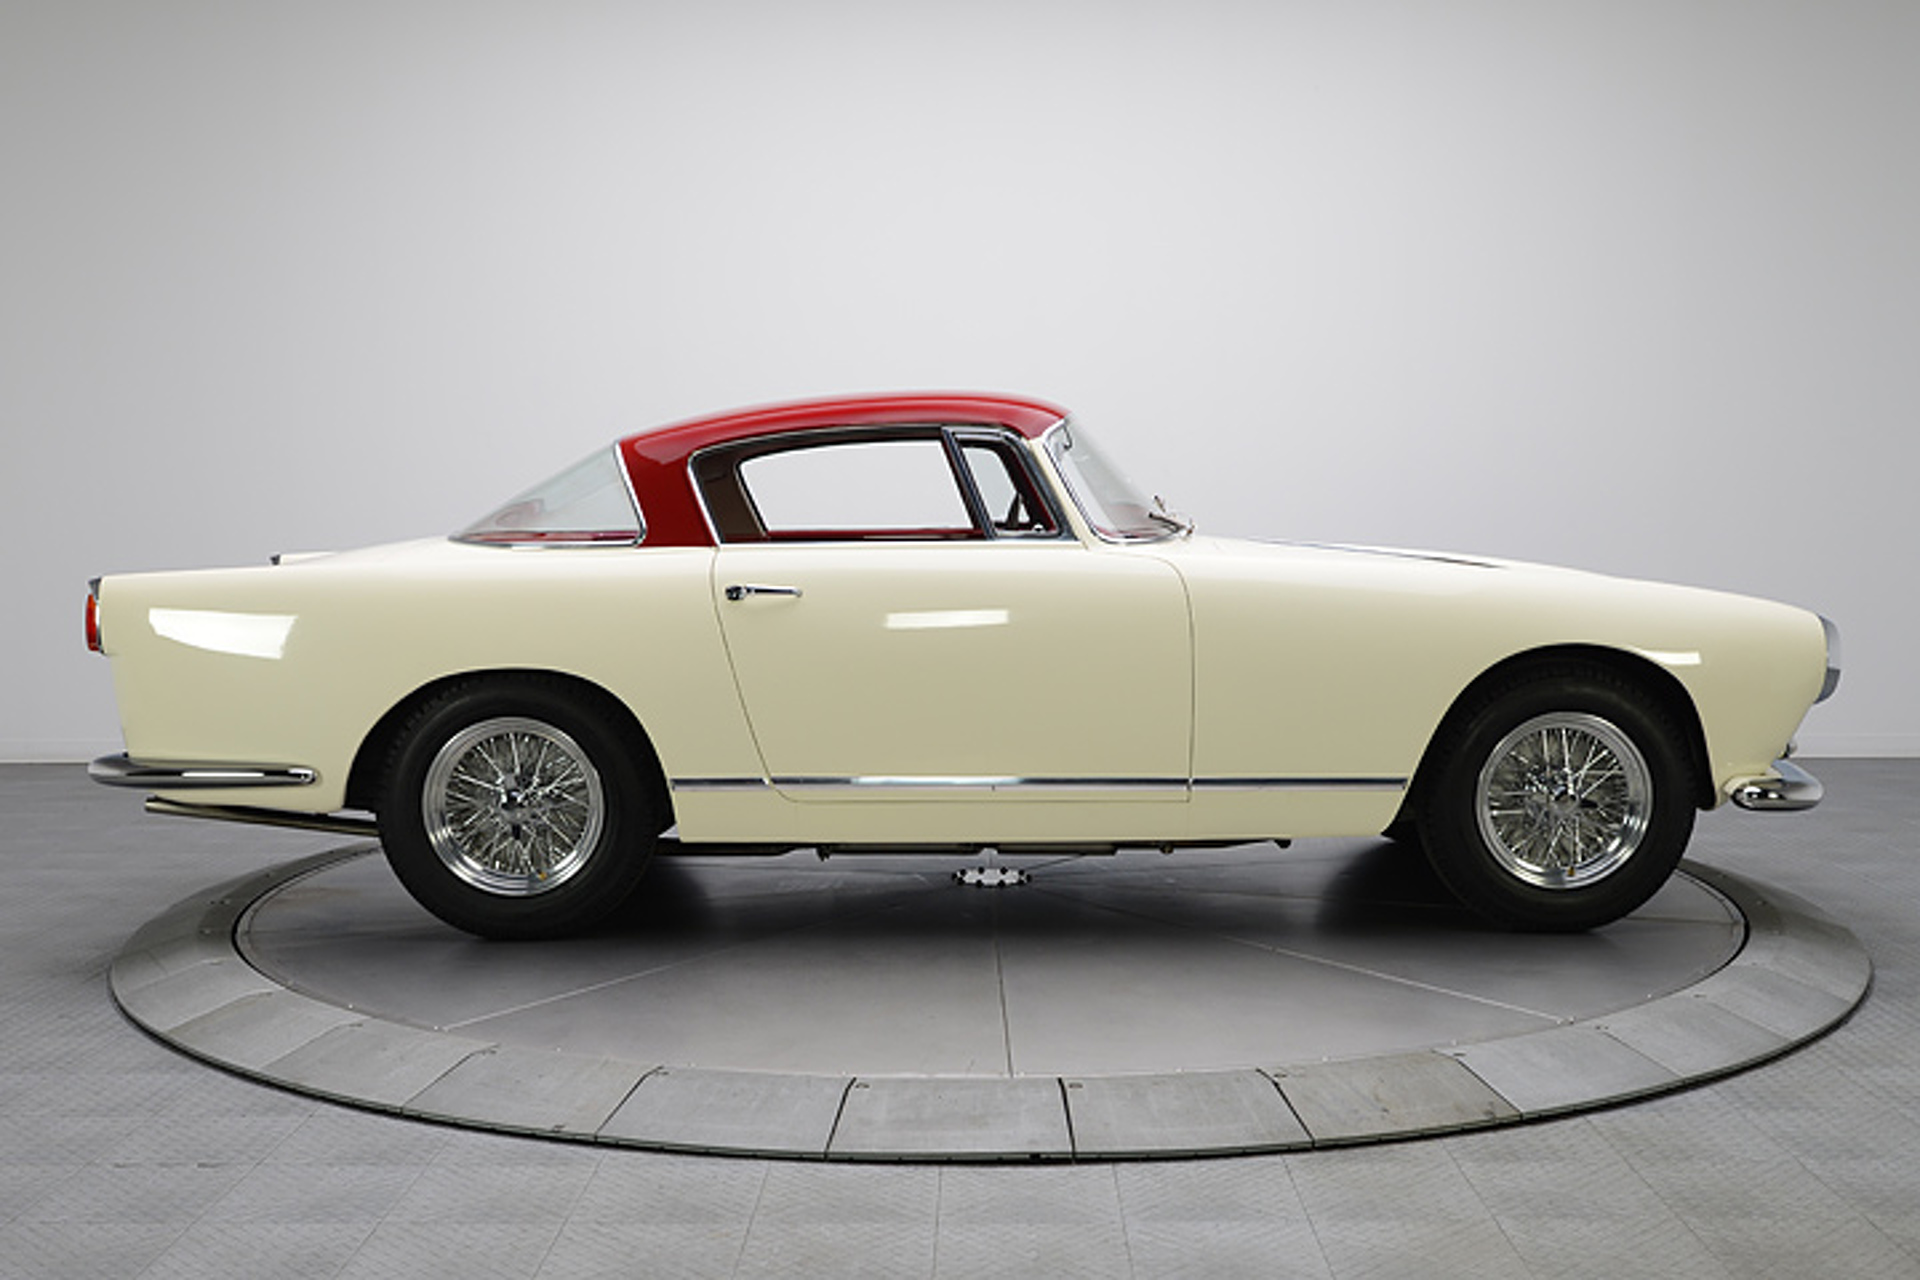 A Rare 1956 Ferrari 250 GT Boano is Up for Sale